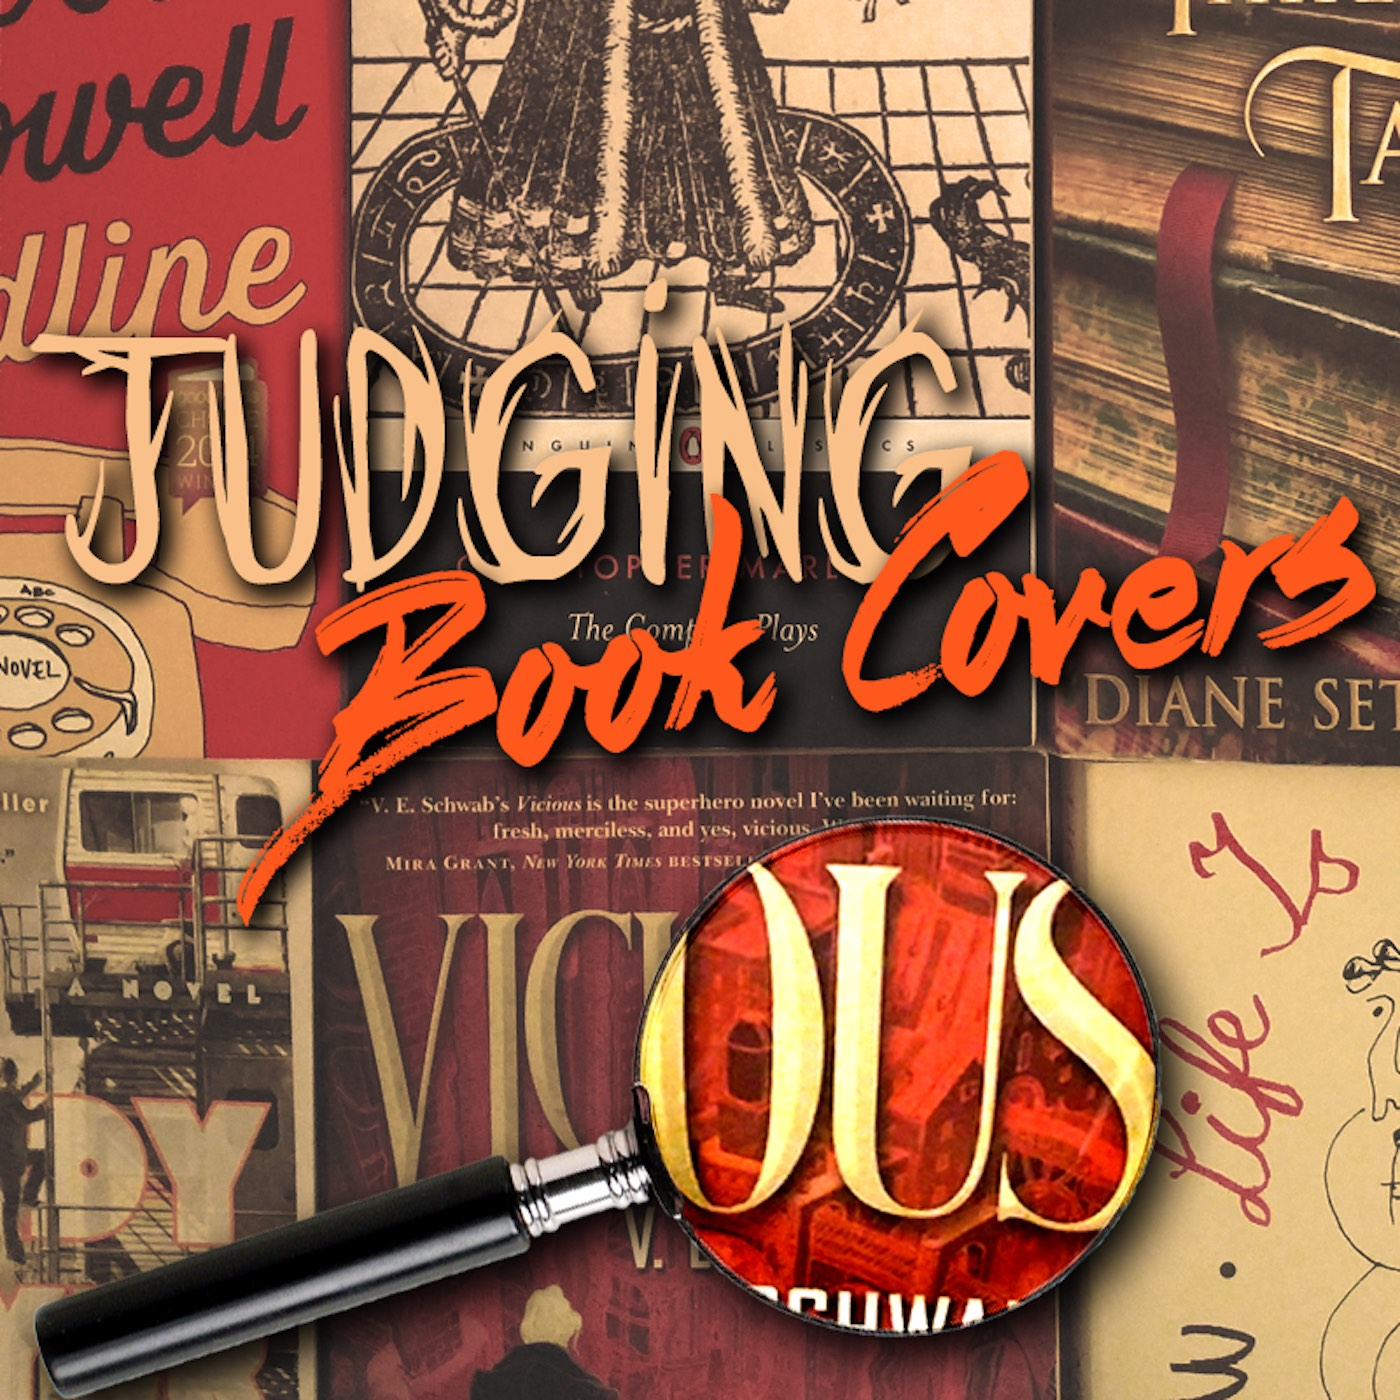 Judging Book Covers Podcast show art